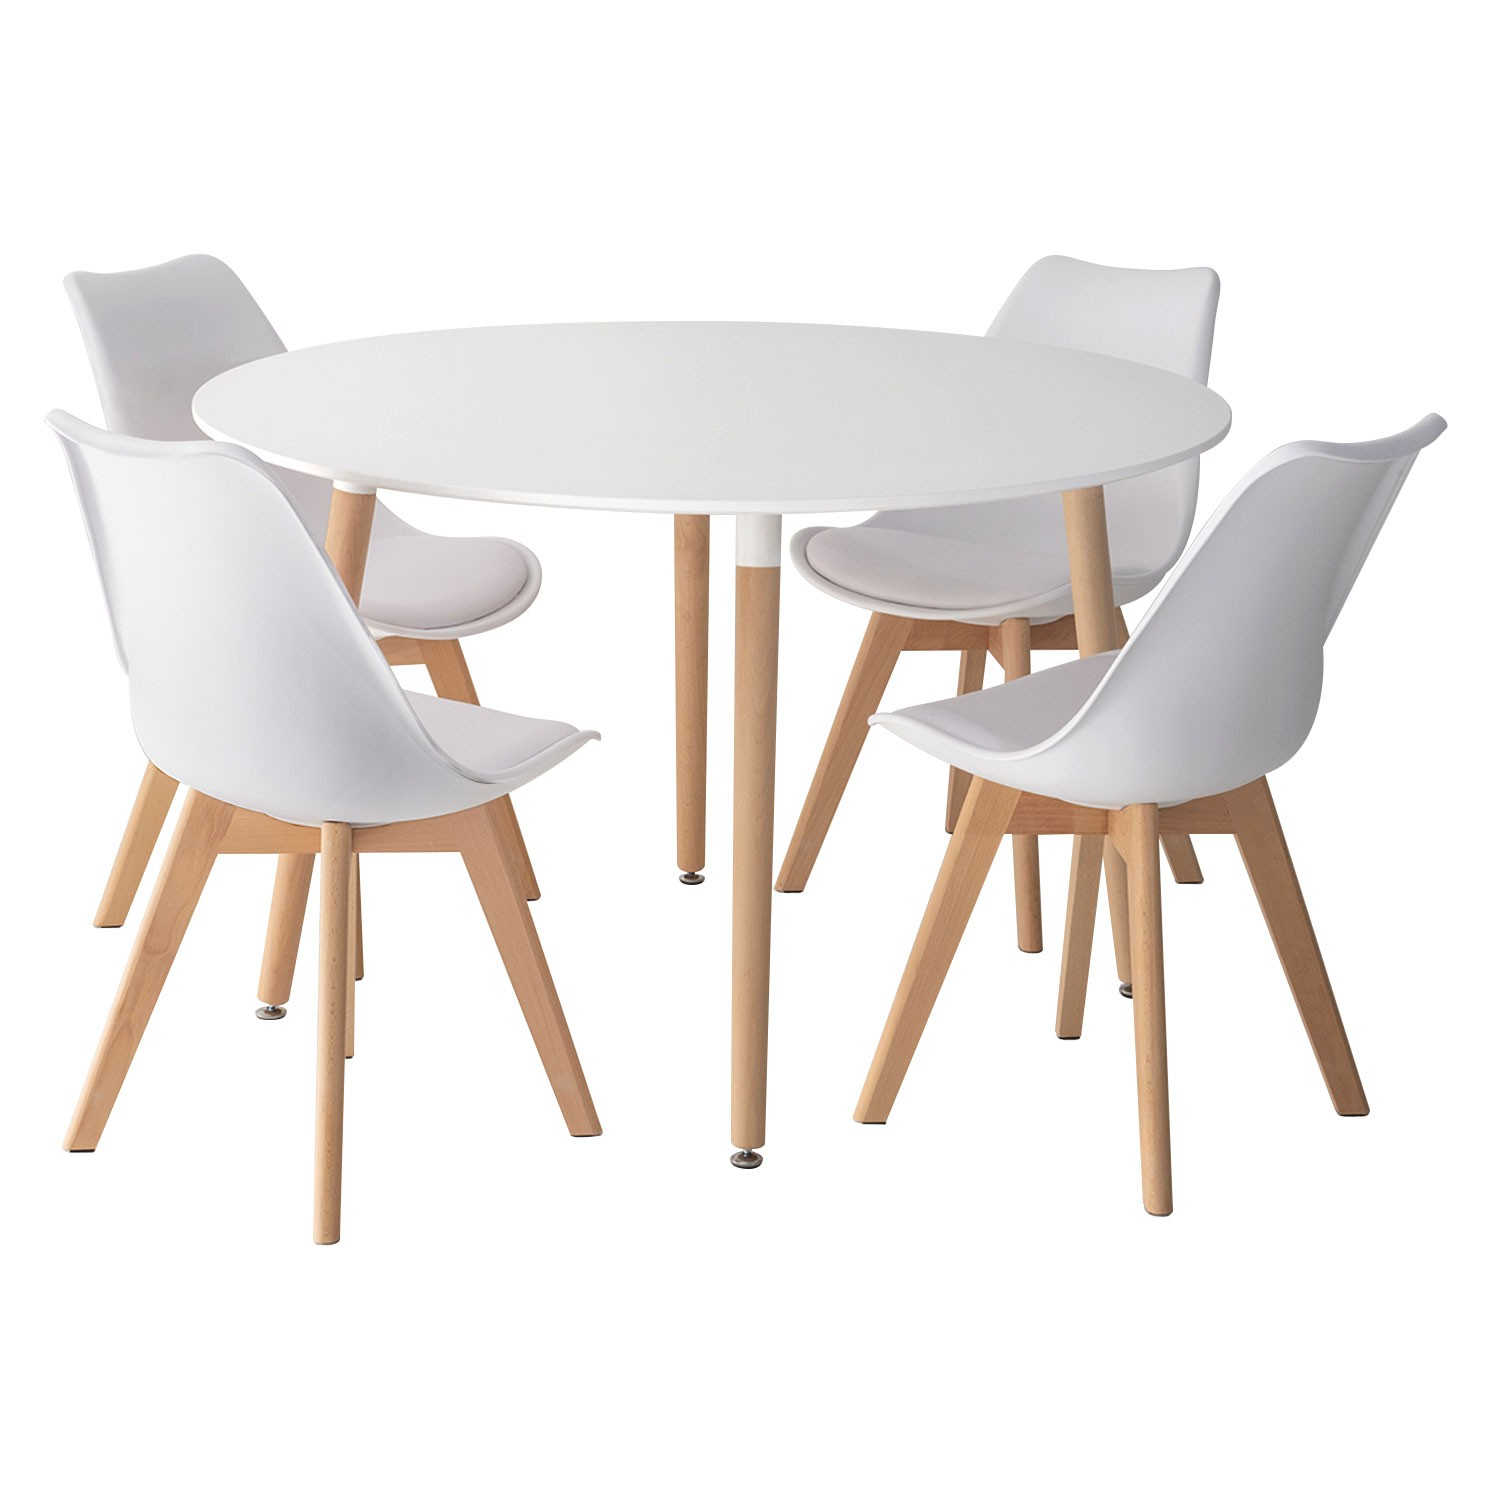 Ensemble table et chaises scandinave LIZ blanc